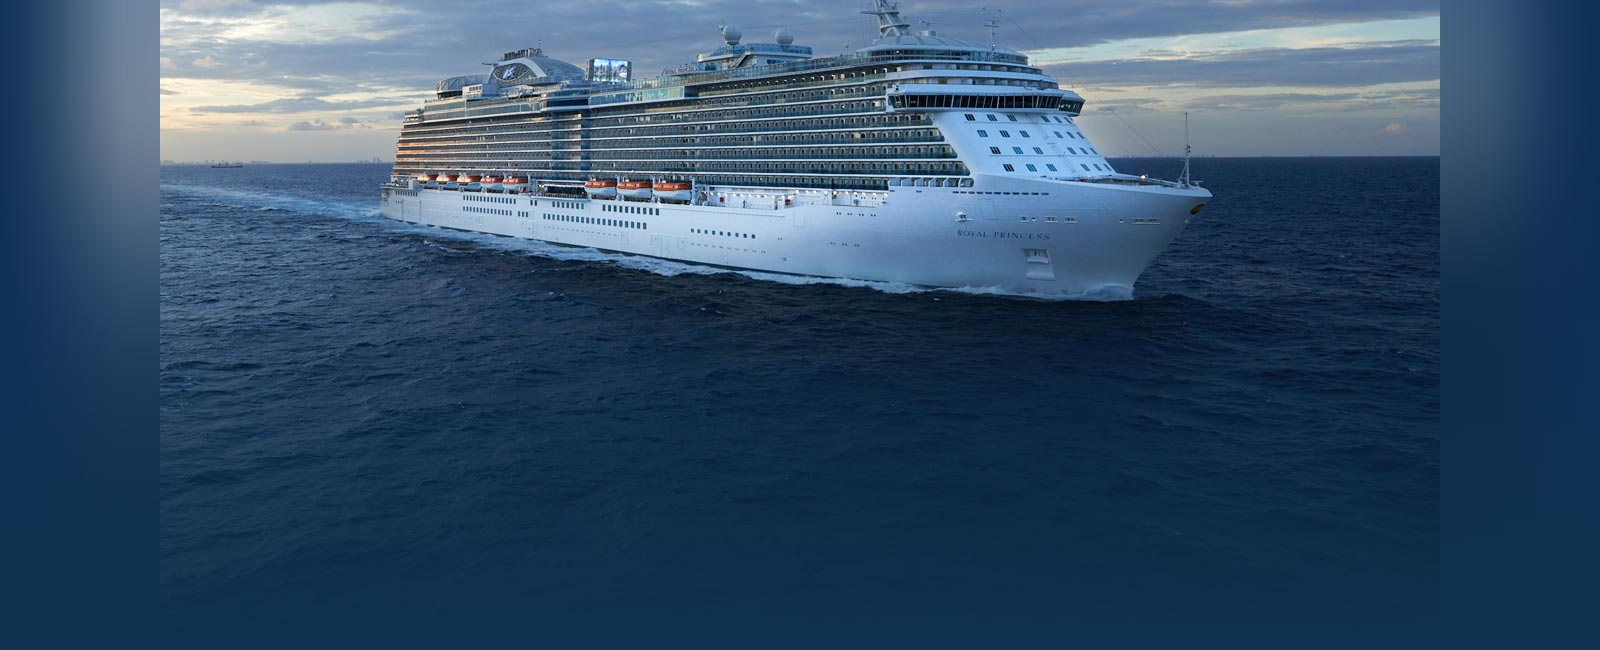 Cruise Ship – Princess Cruises